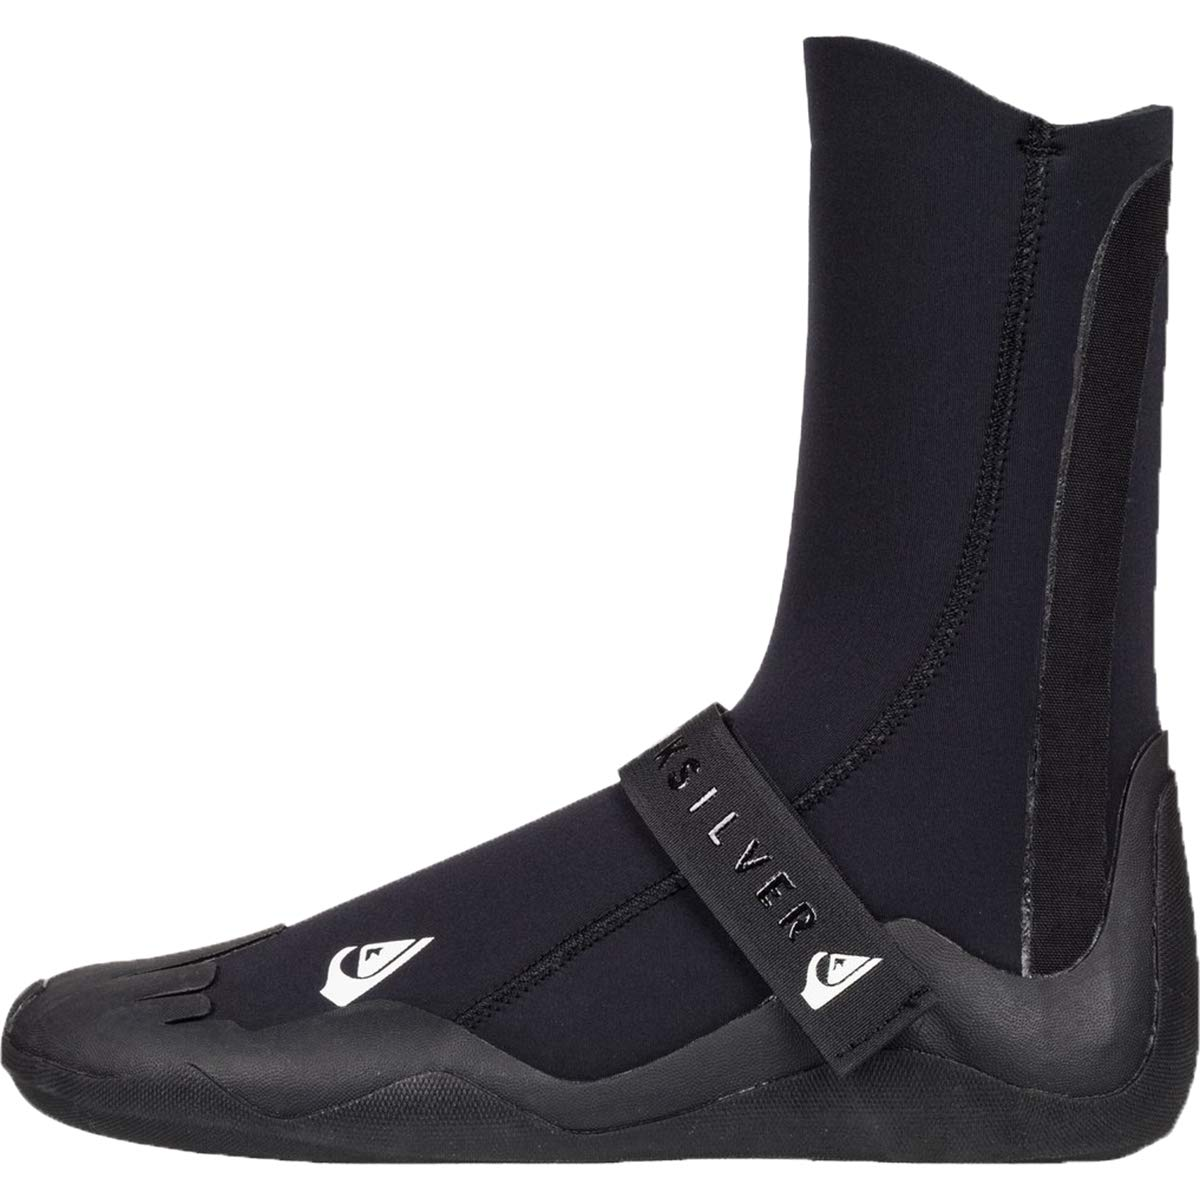 Quiksilver Mens 5Mm Syncro - Round Toe Surf Boots Round Toe Surf Boots Black 8